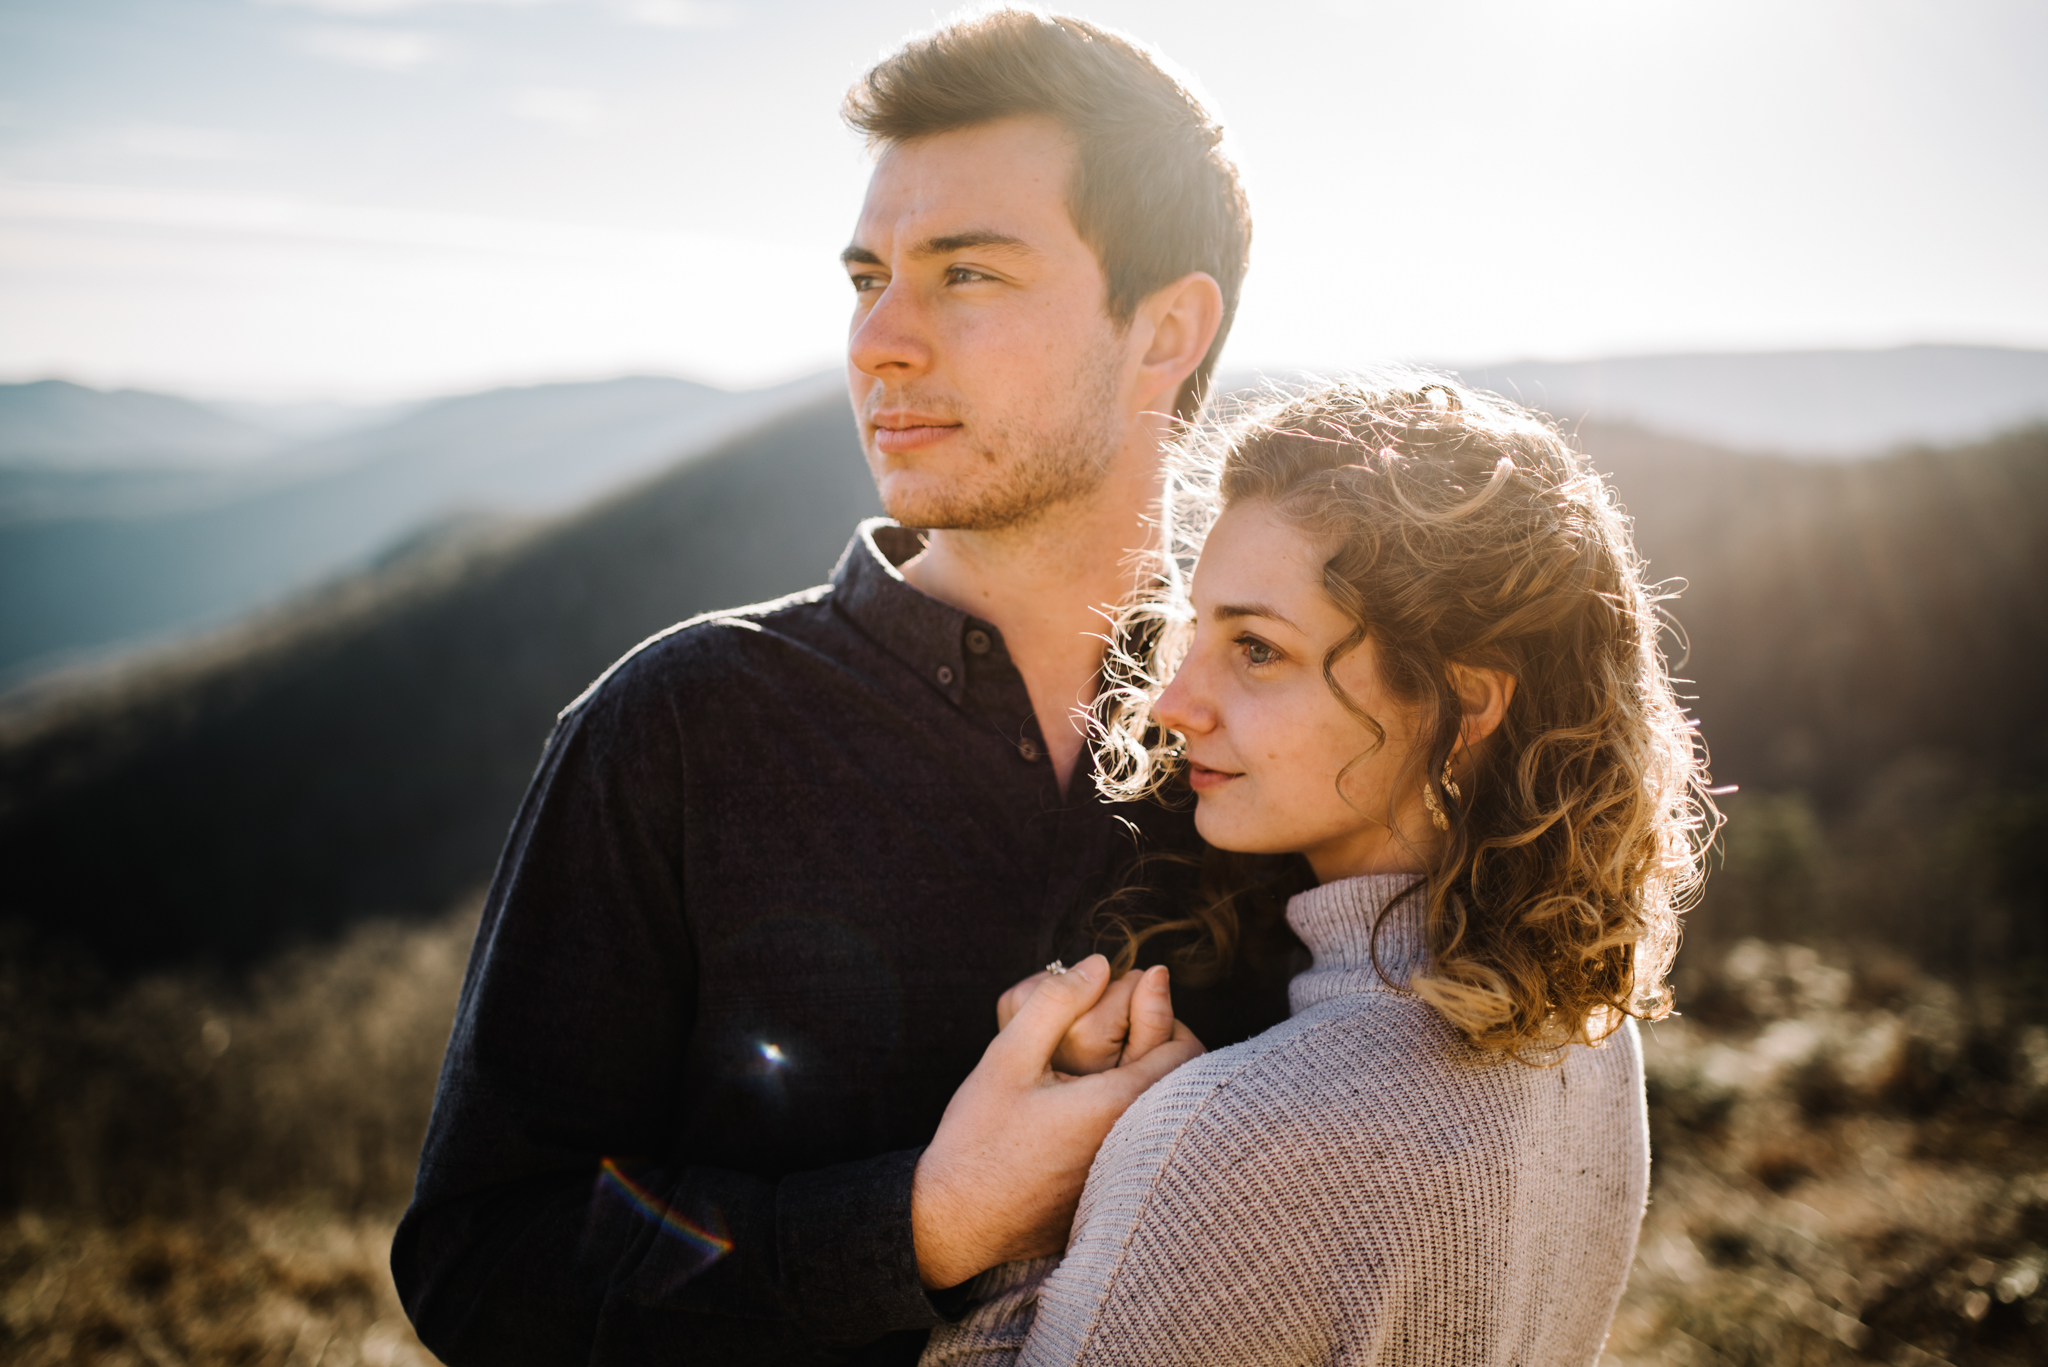 Alli and Mitchell - Shenandoah National Park Adventure Winter Engagement Session on Skyline Drive - White Sails Creative Elopement Photography_27.JPG